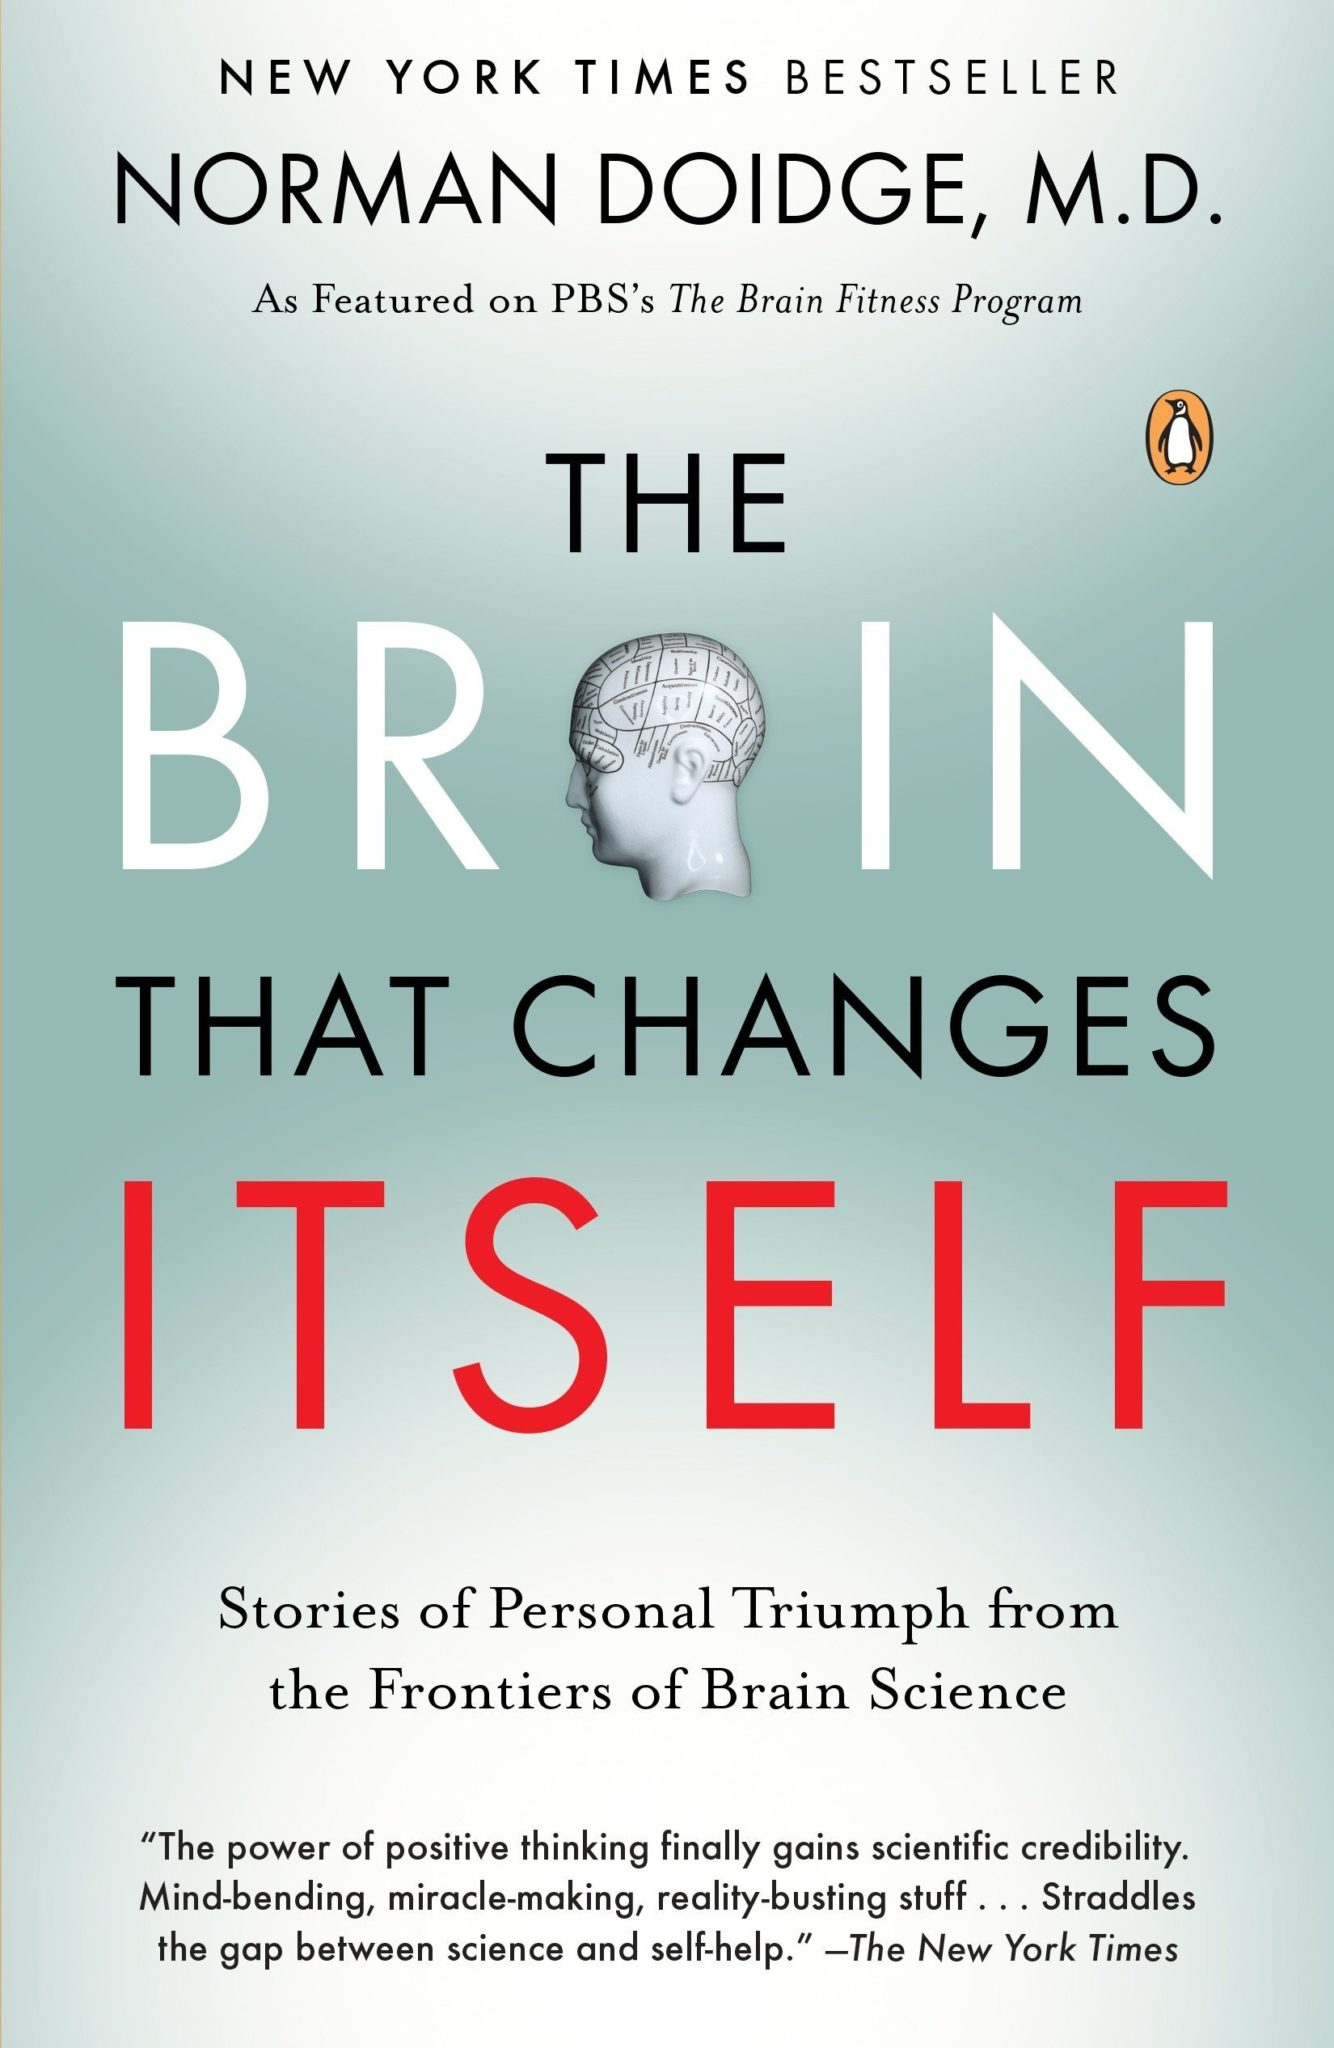 The Brain Change Itself by Norman Doidge